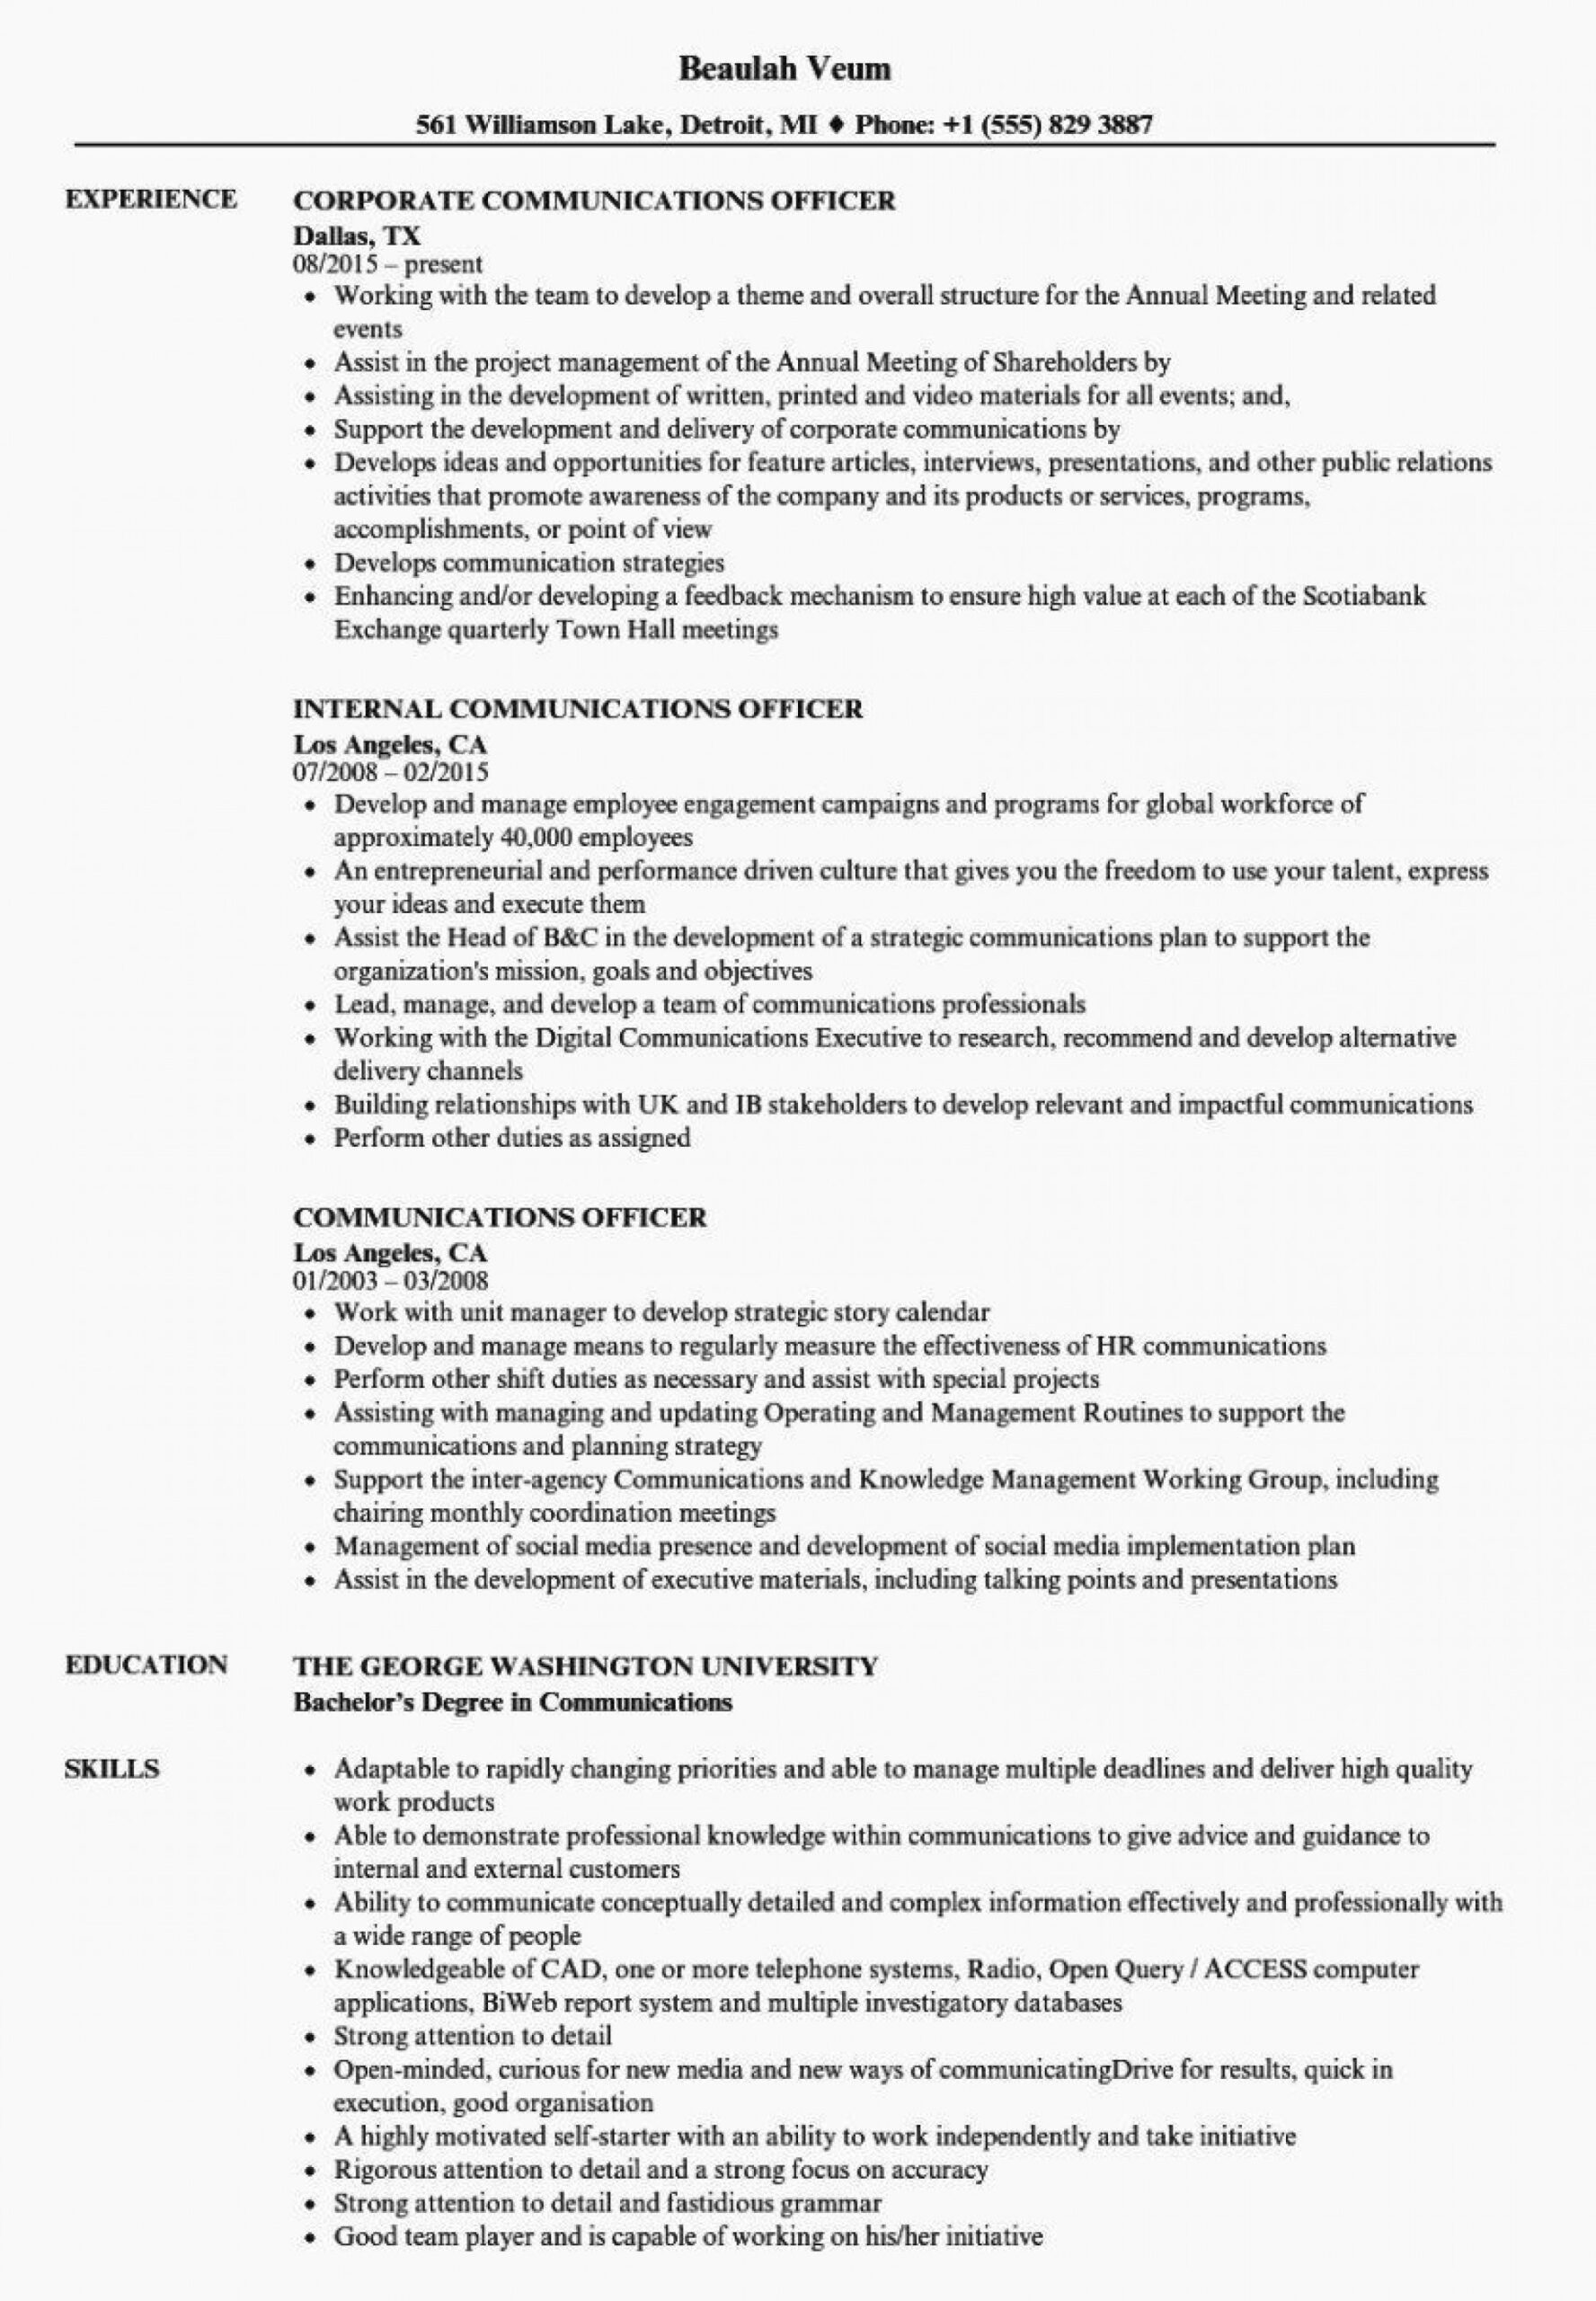 federal resume template addictionary free best image telecom domain experience private Resume Free Federal Resume Template 2020